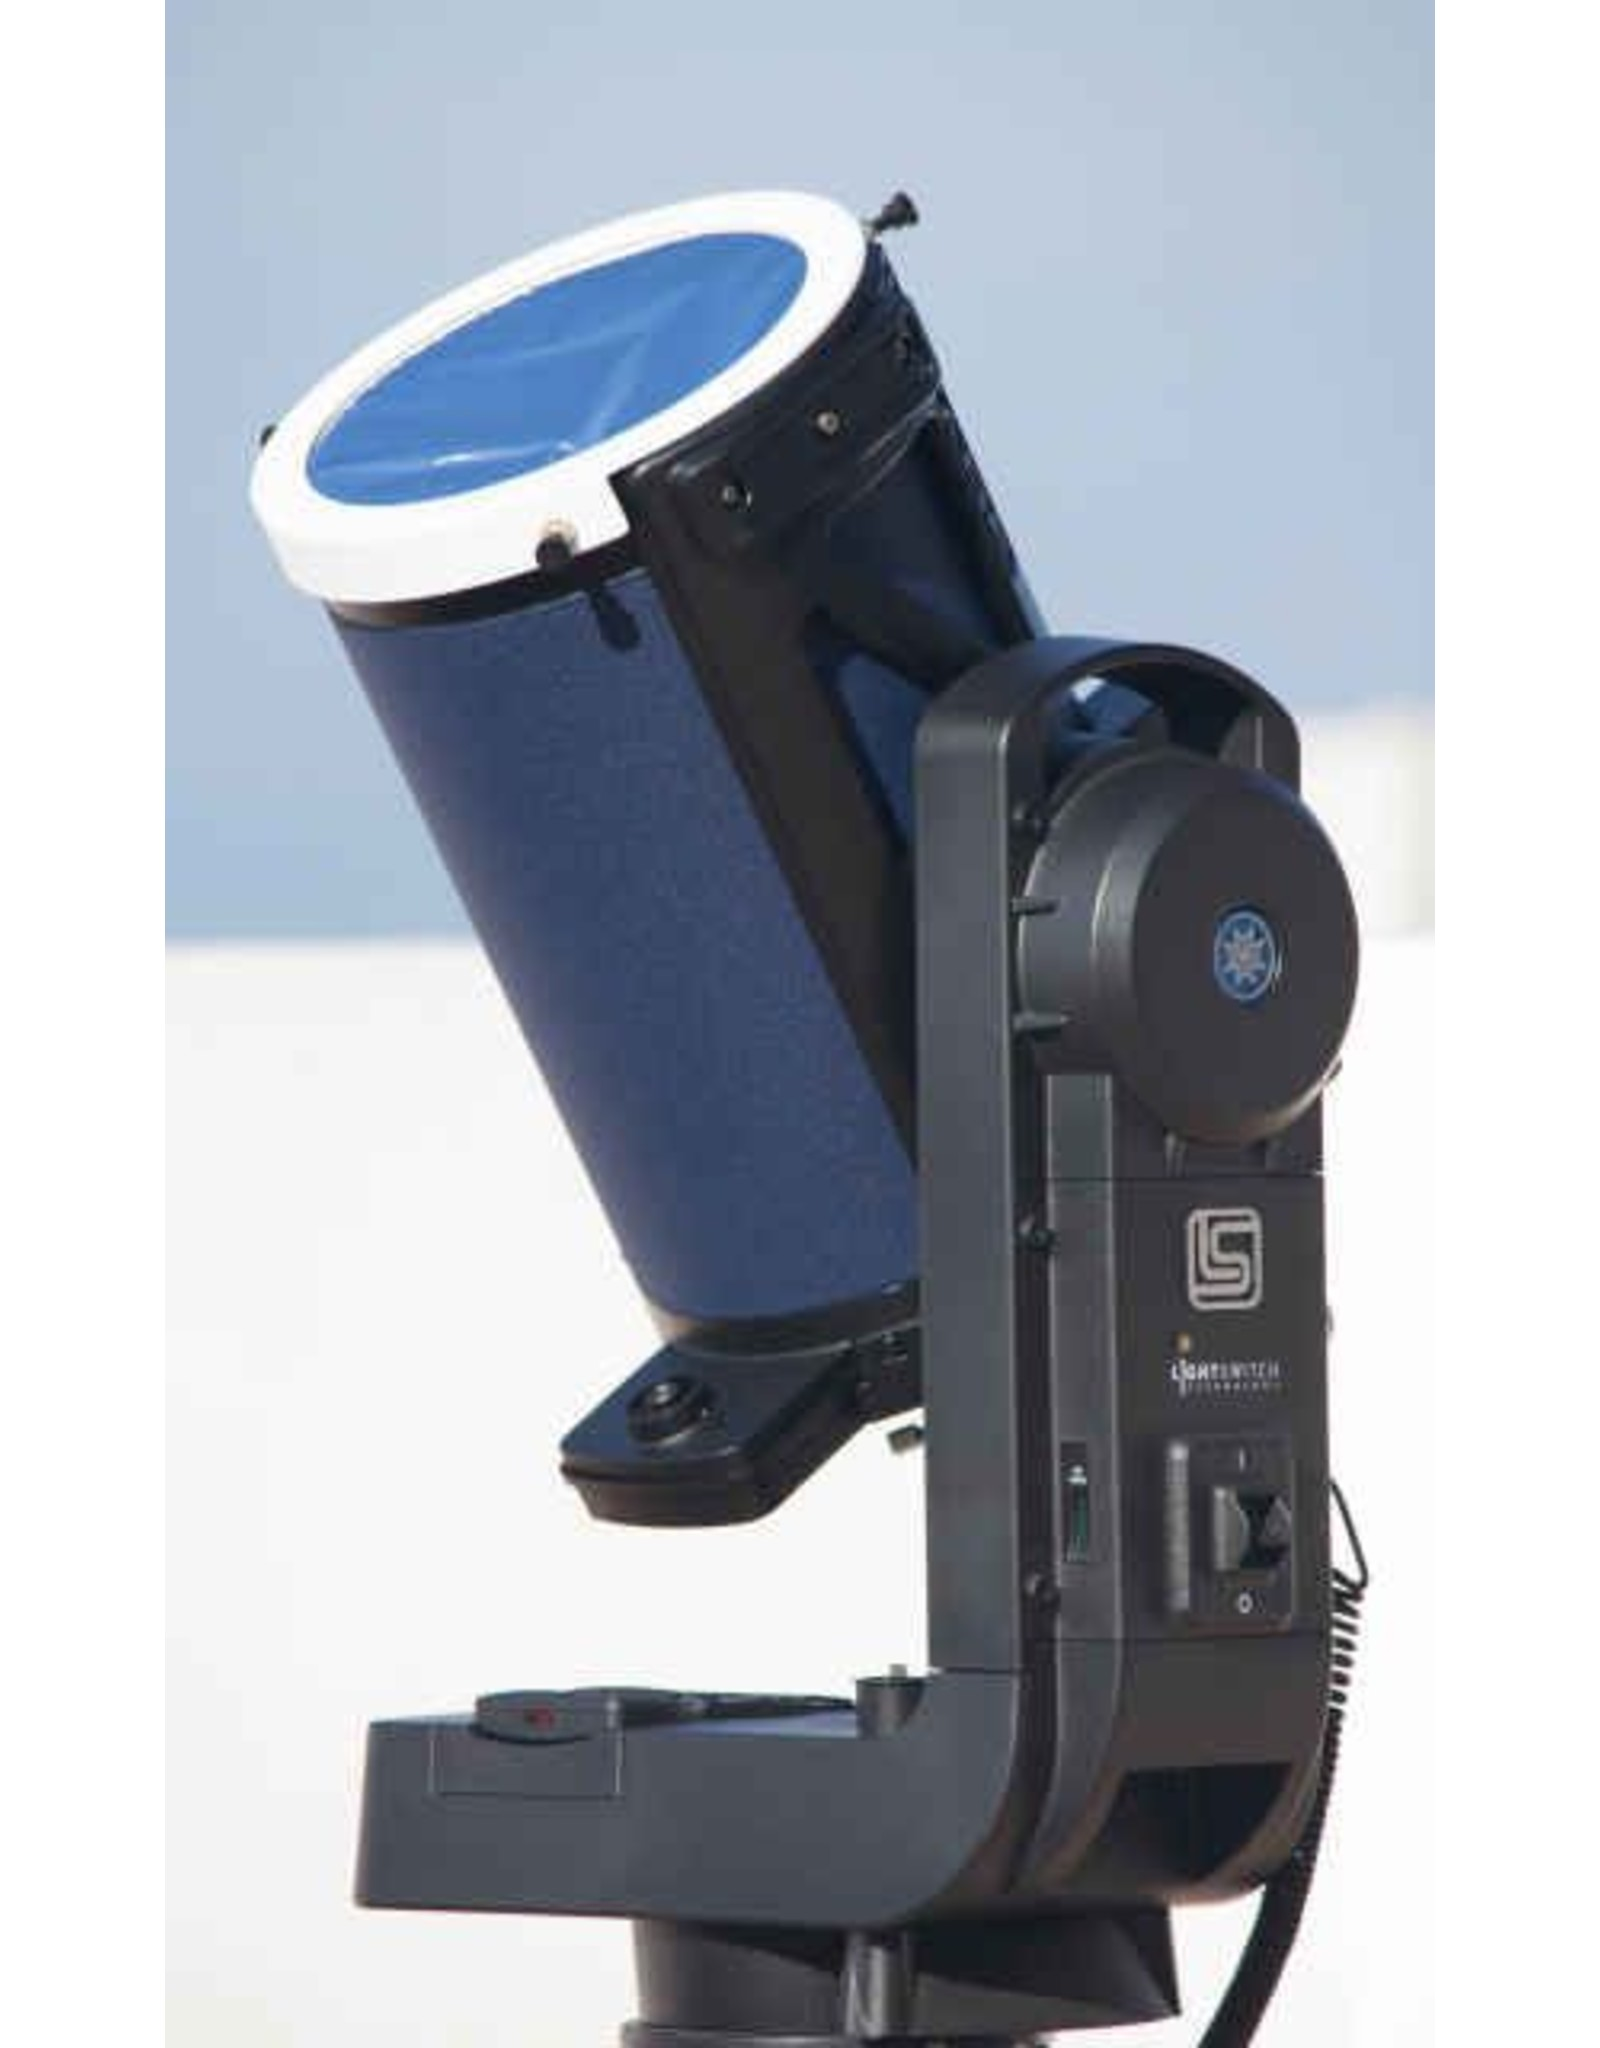 Astrozap AZ-1004-LS Baader Solar Filter - 225mm-235mm with notch for meade LS & LT